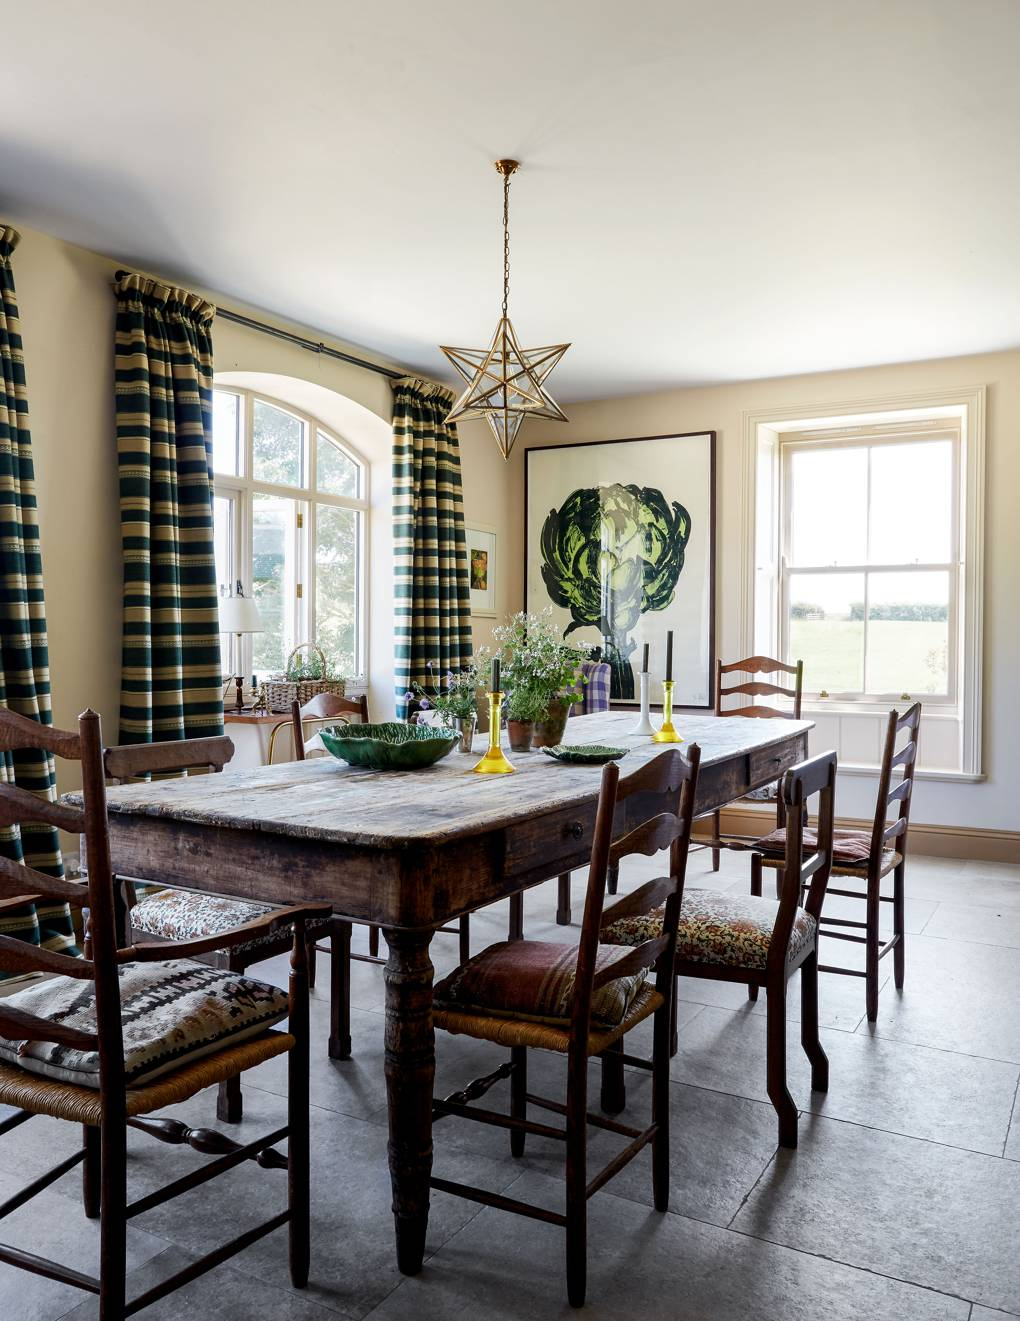 Interior Design | At Home With: Rita Konig, County Durham